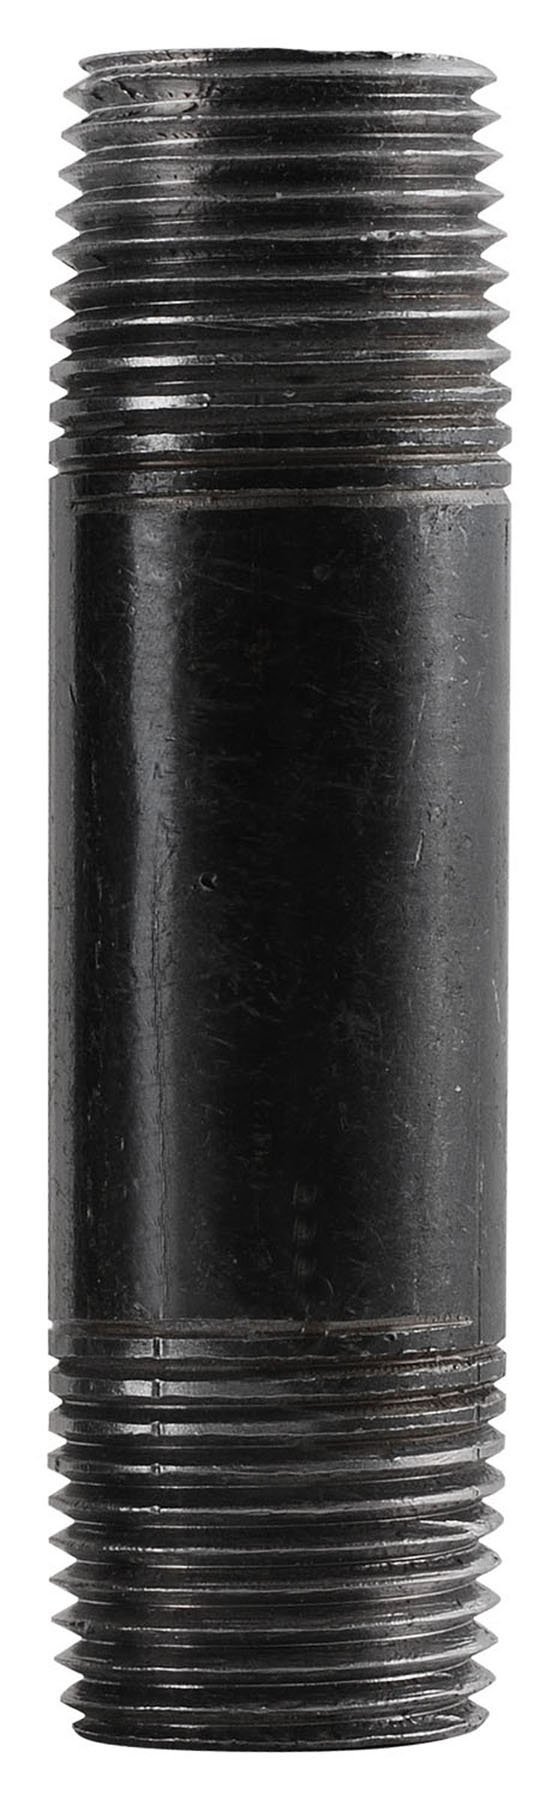 Southland 583-015HN Steel Nipples, 1/2'' x 1-1/2'', Black